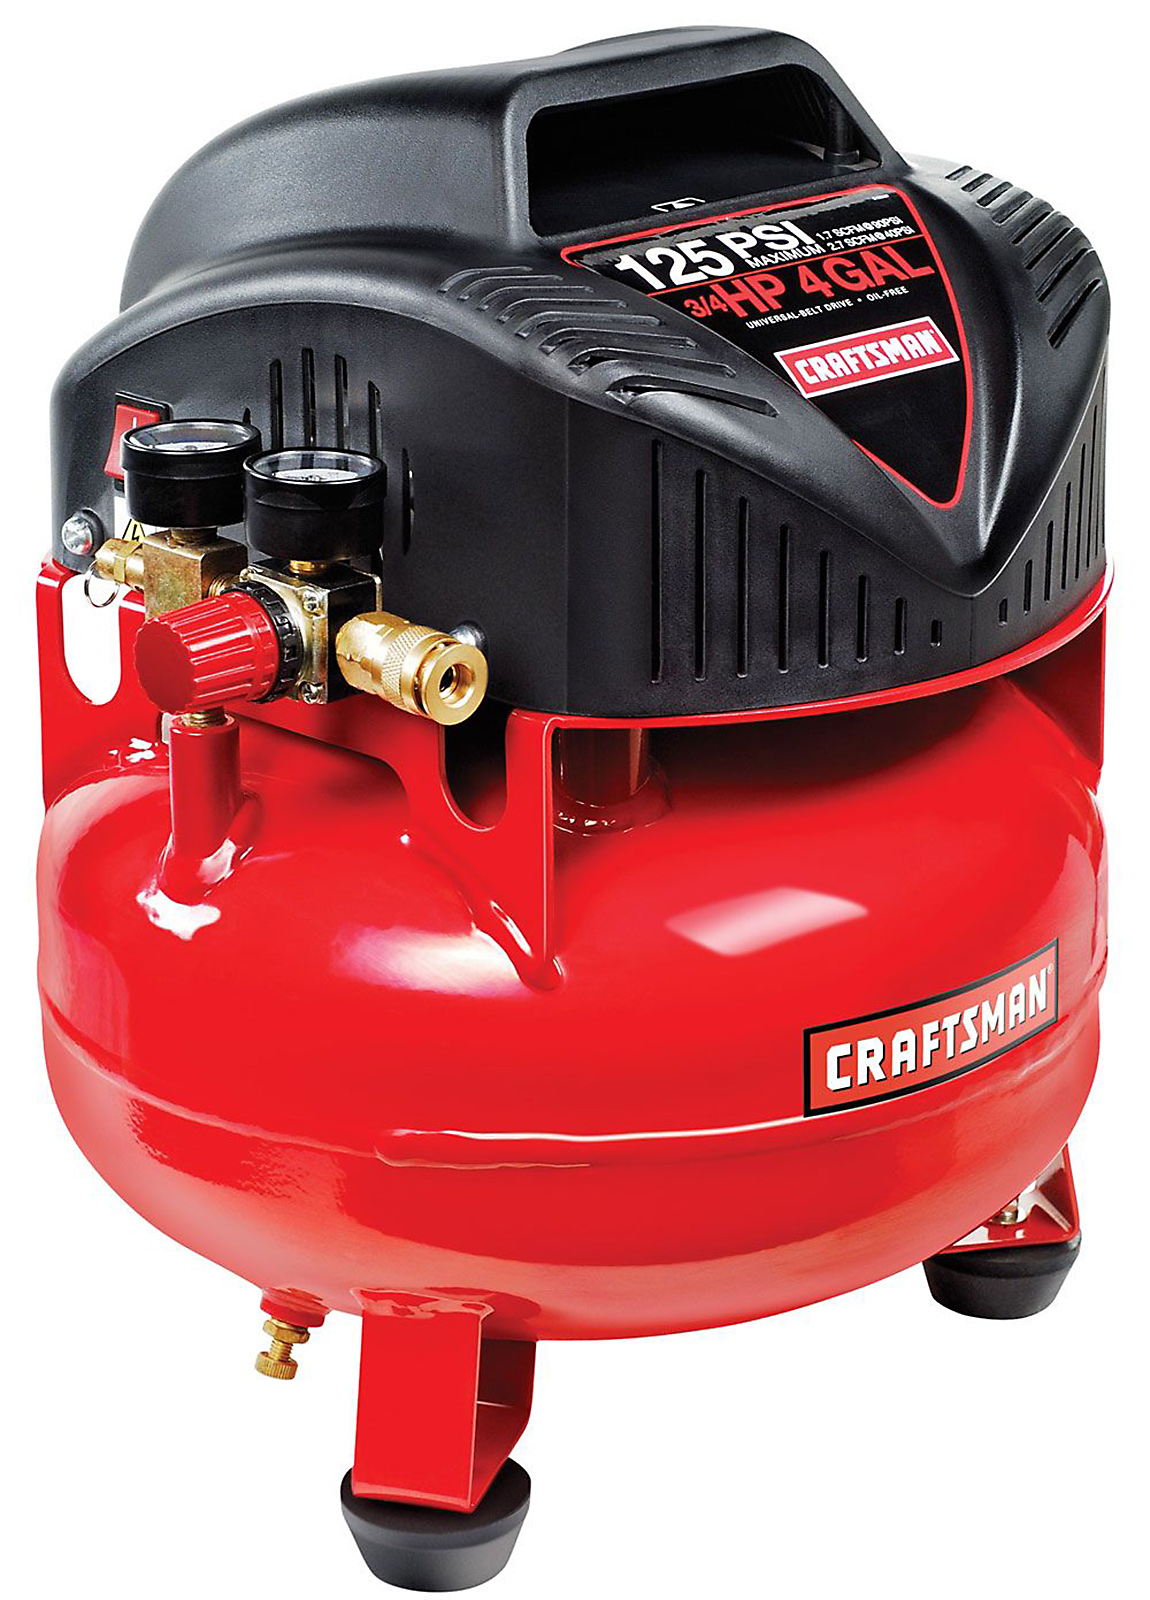 small resolution of craftsman 4 gallon 0 75 hp oil free pancake air compressor 125 max psi gma c compressor wiring diagram sears air compressor wiring diagram